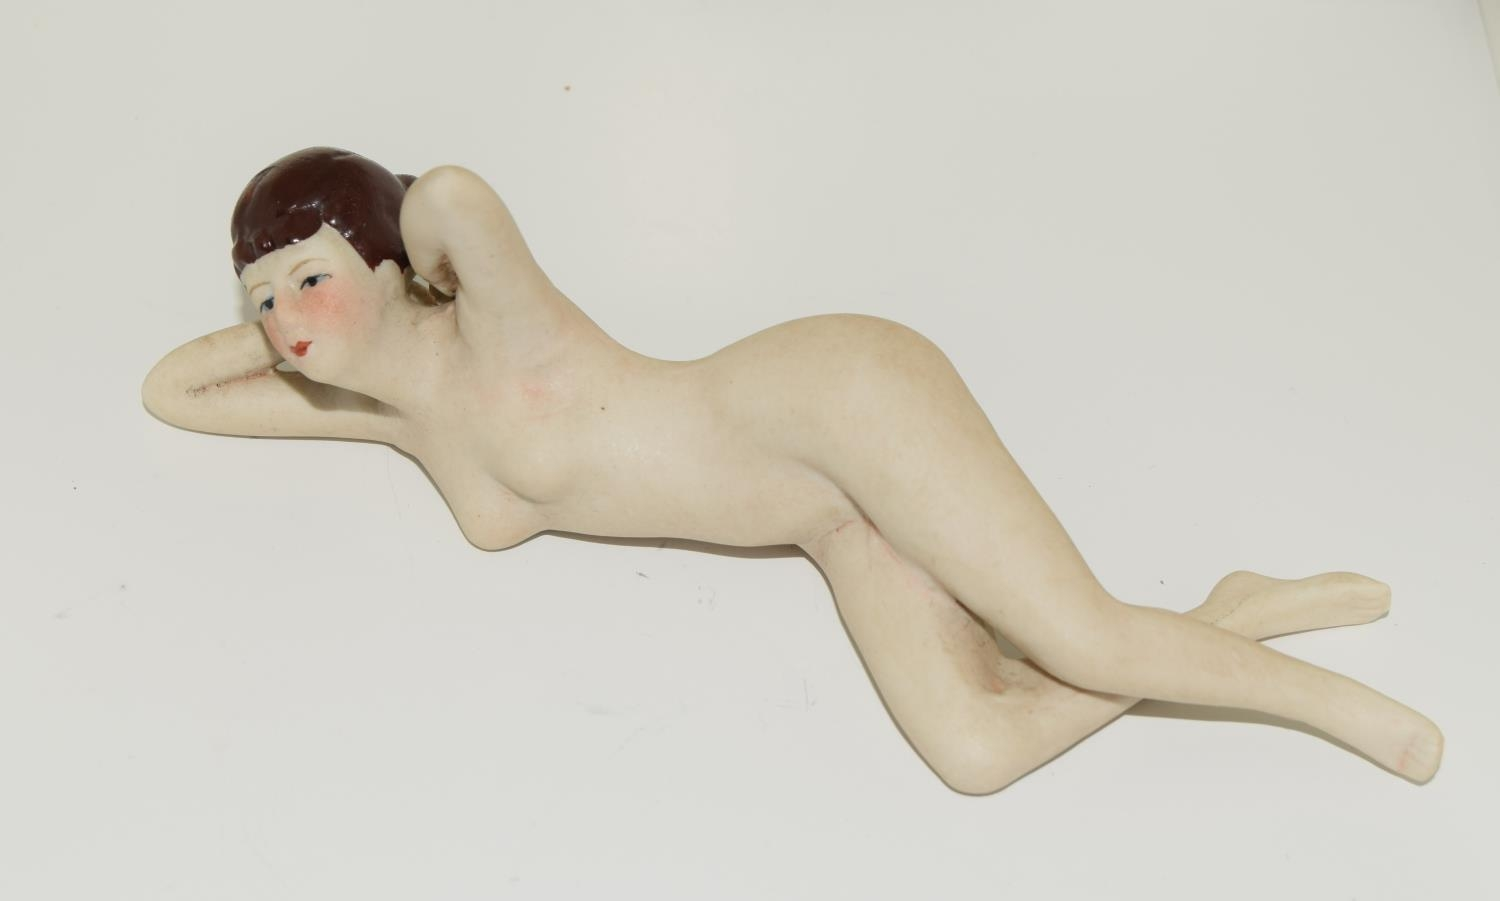 A Nude figure of a flapper girl.